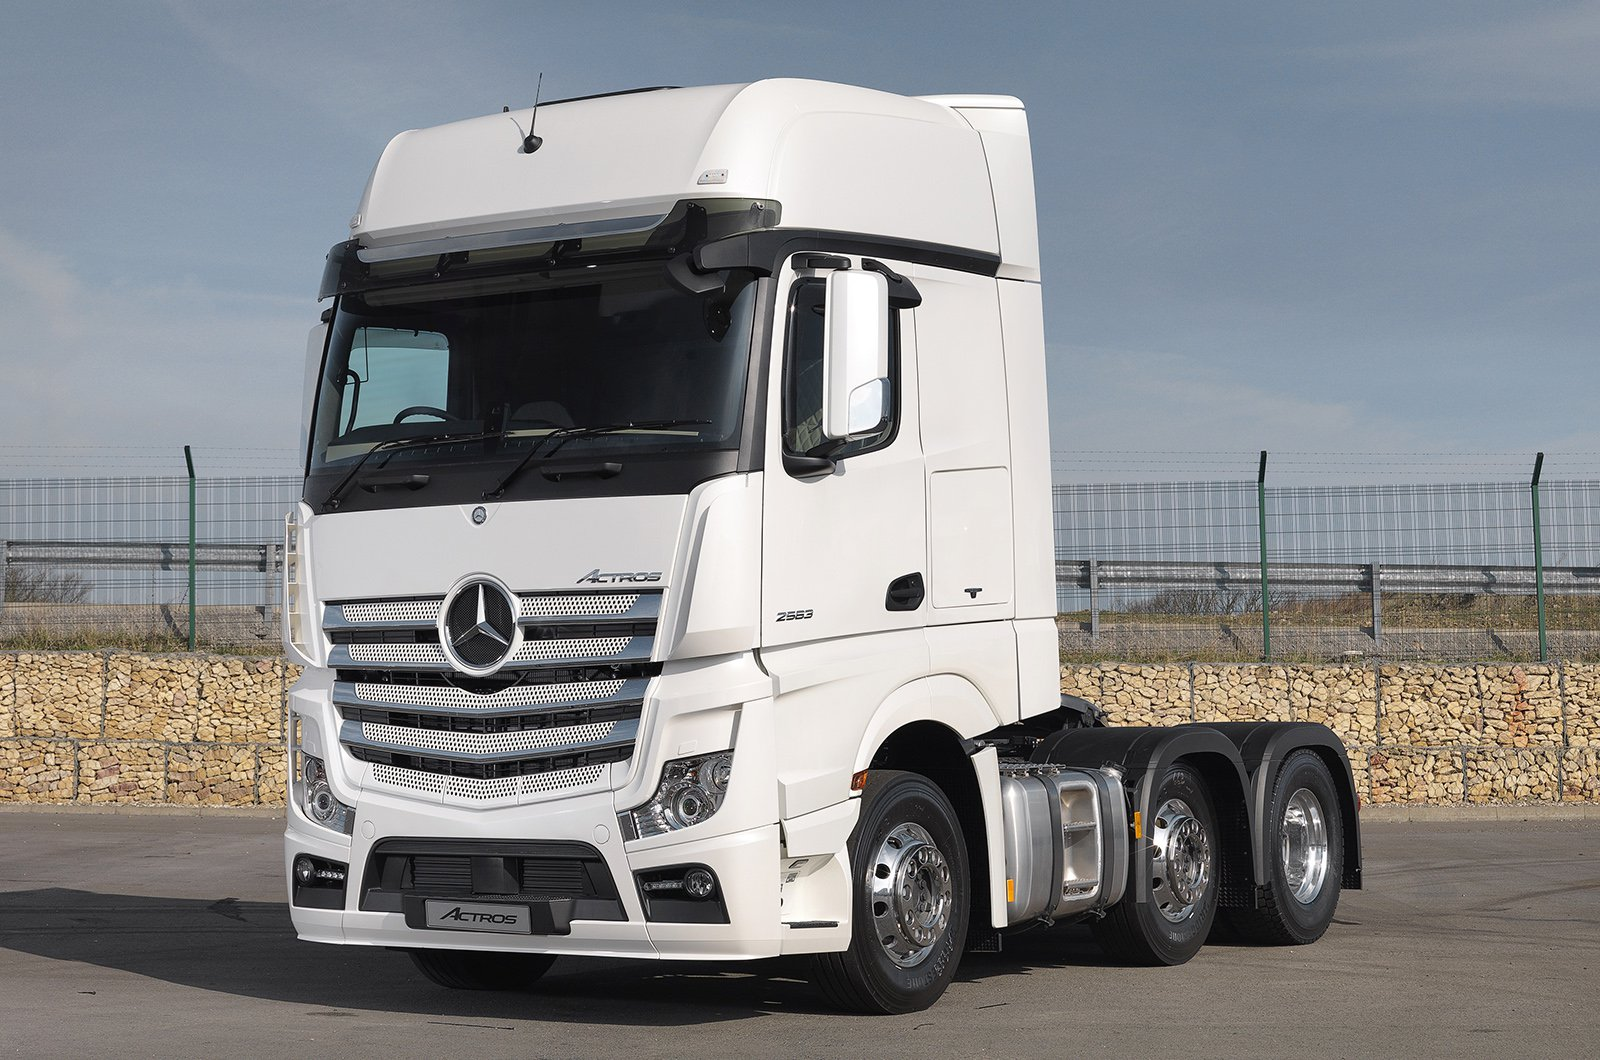 Mercedes Actros tractor